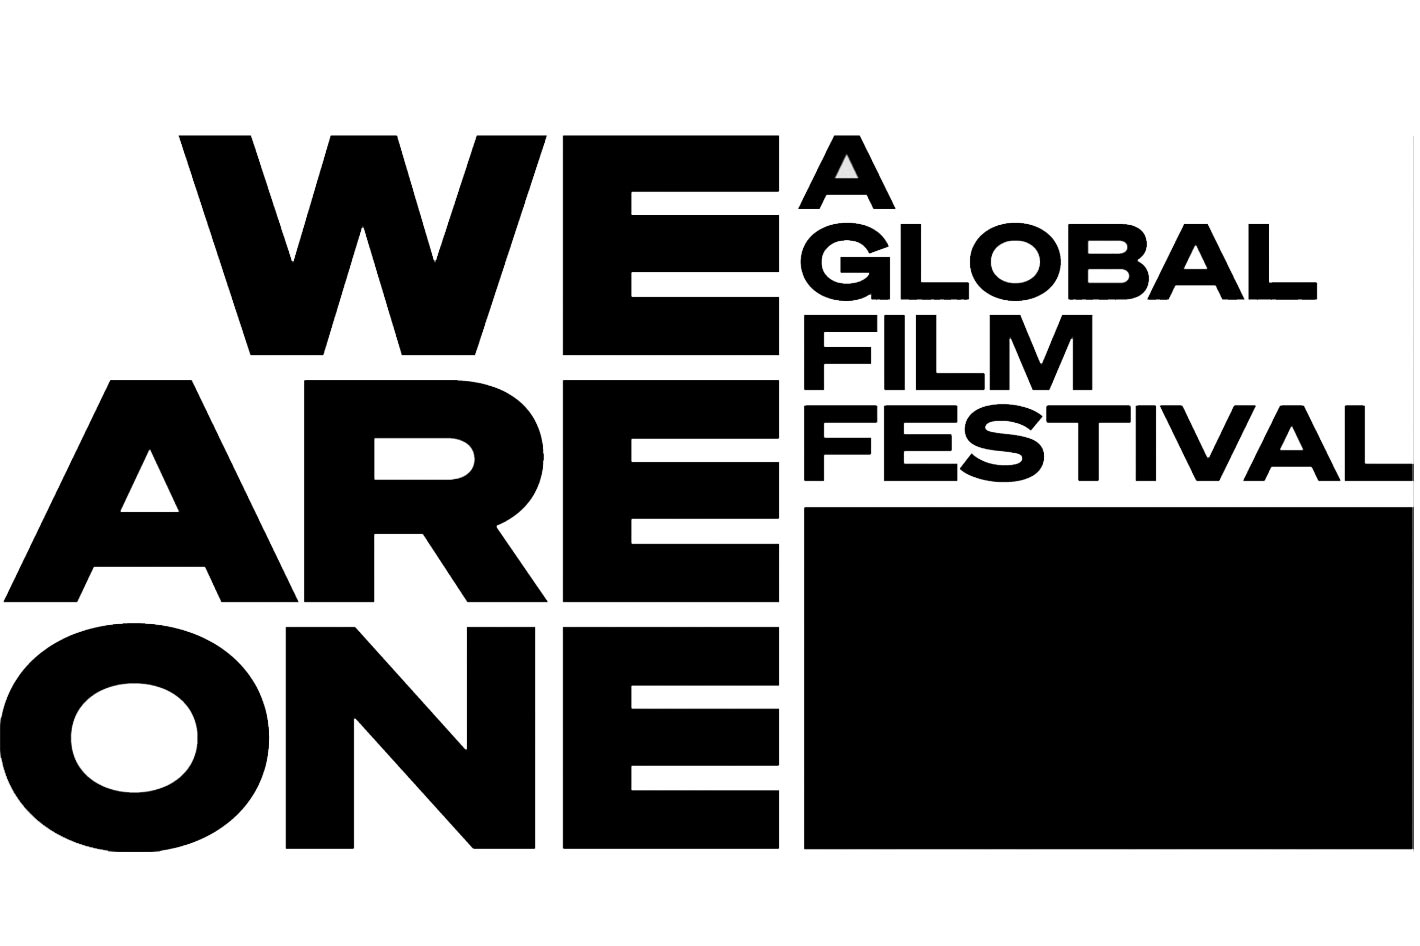 We Are One: 10-day global film festival starts May 29